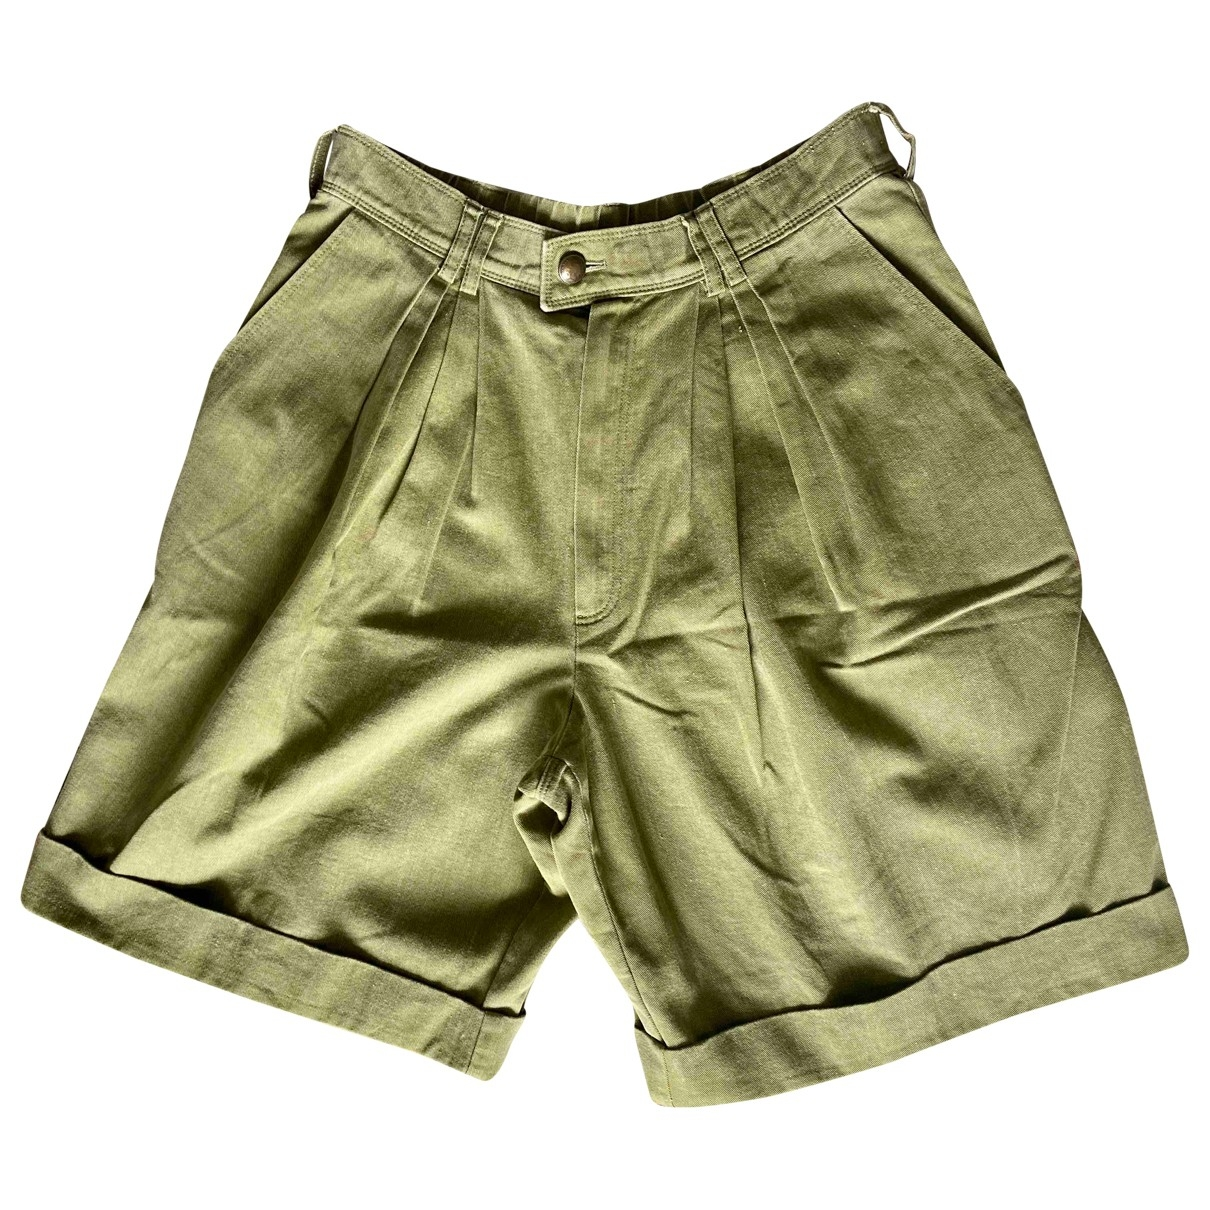 Bogner \N Green Cotton Shorts for Women 14-16 US